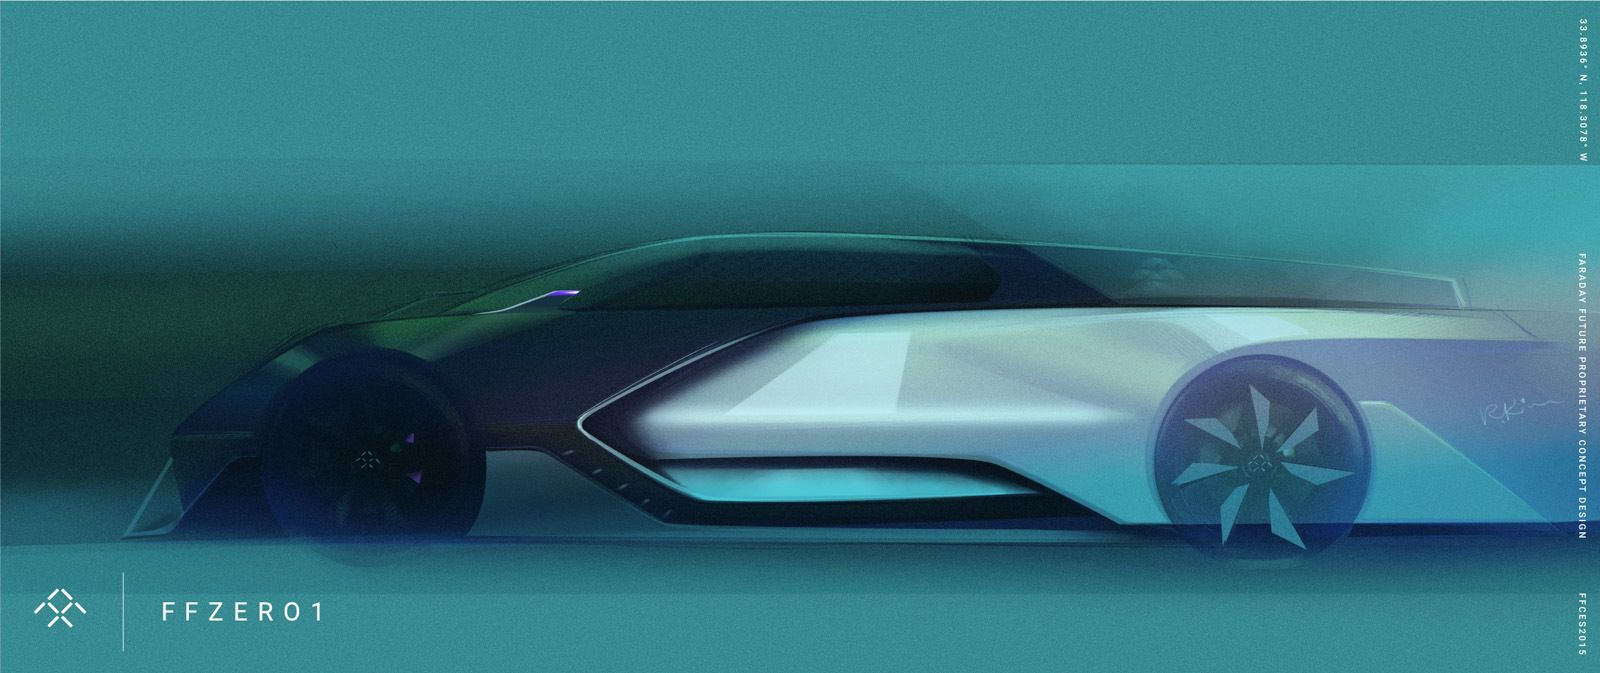 Faraday Future S Design Dna The Ffzero1 Faraday Future